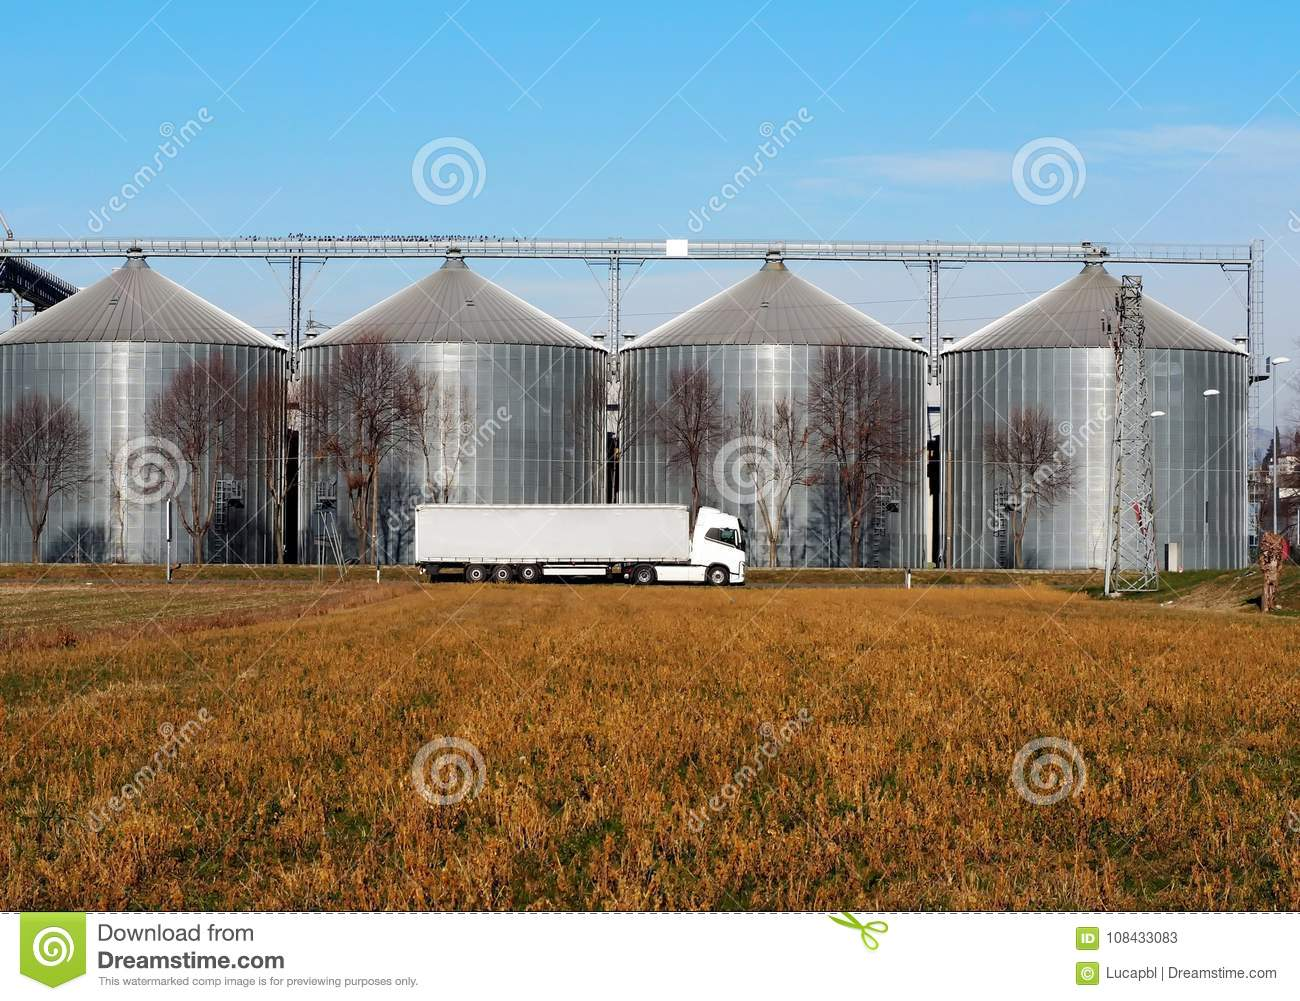 White Long Vehicle Trailer Truck In Front Of A Grain Storage Bins